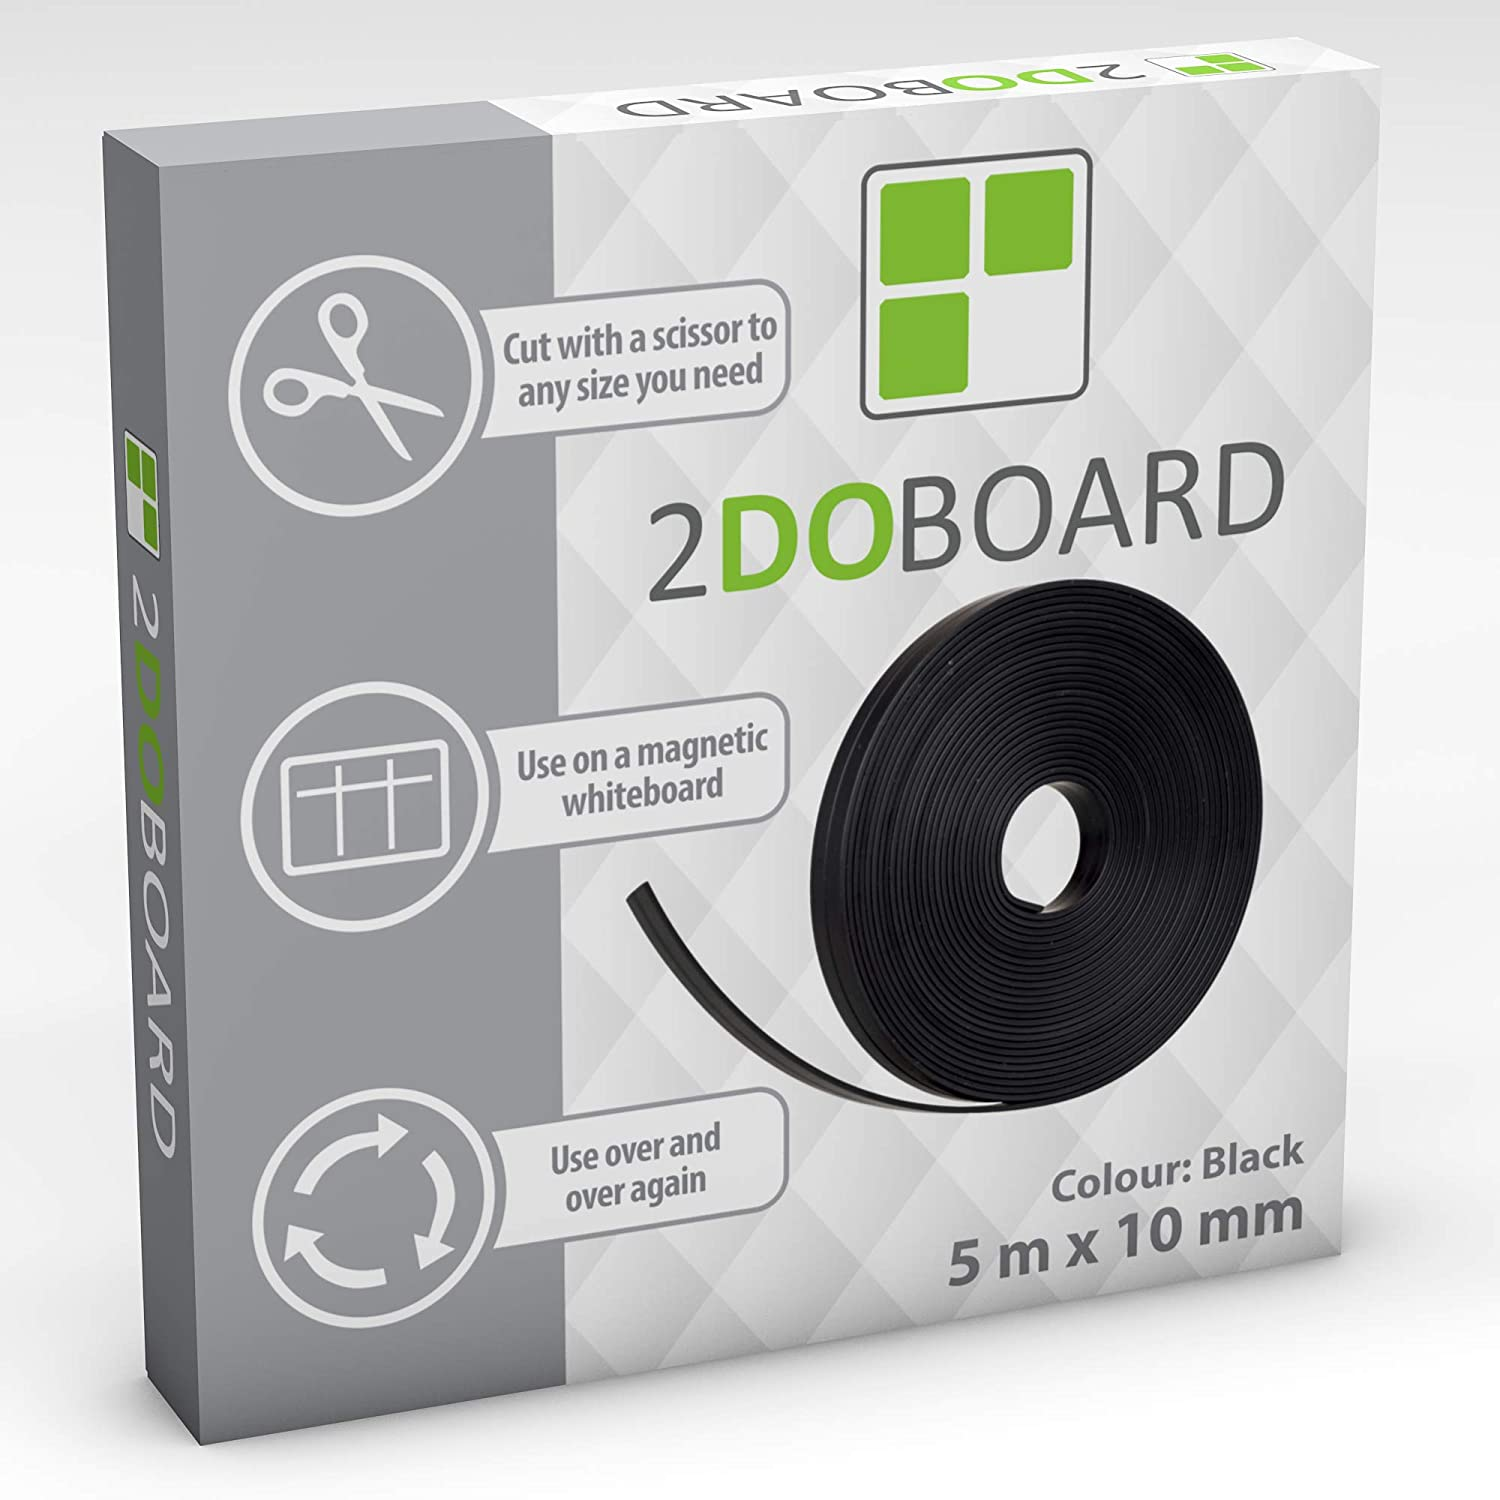 Magnetic Whiteboard Tape - Make Moveable Grids at all Magnetic Surfaces like Whiteboards and Fridges 10 mm x 5 m Black 0,4 x 197 Inch